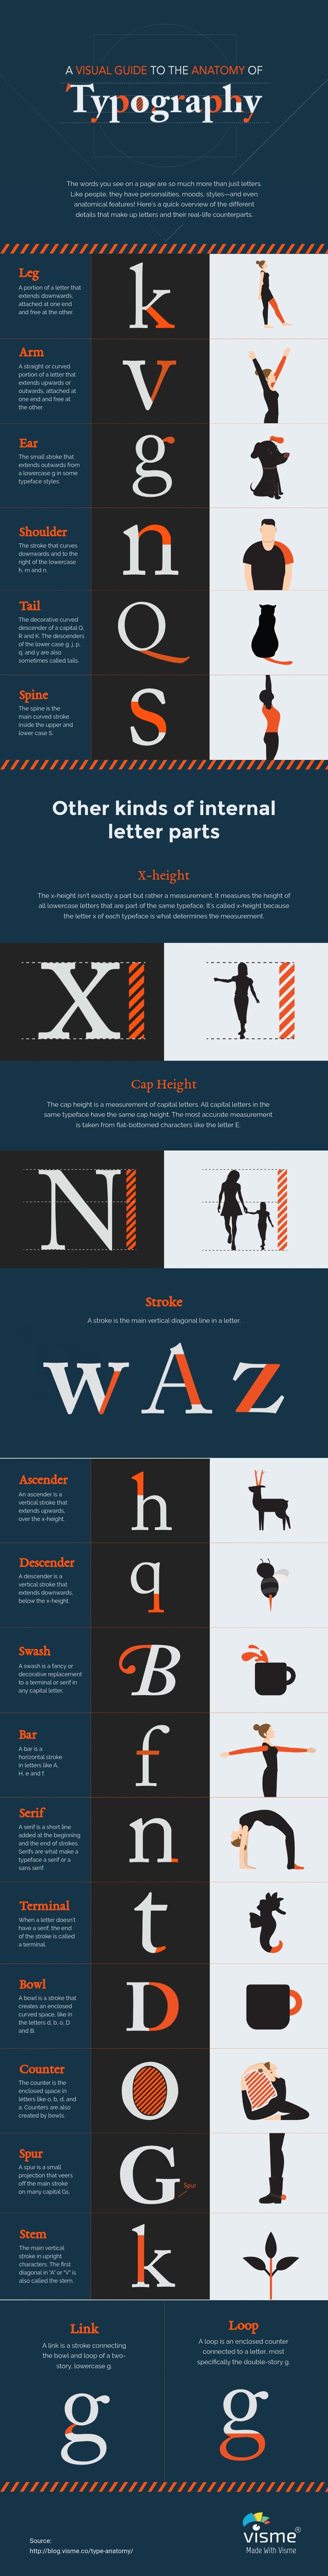 A Visual Guide to the Anatomy of Typography - #Infographic